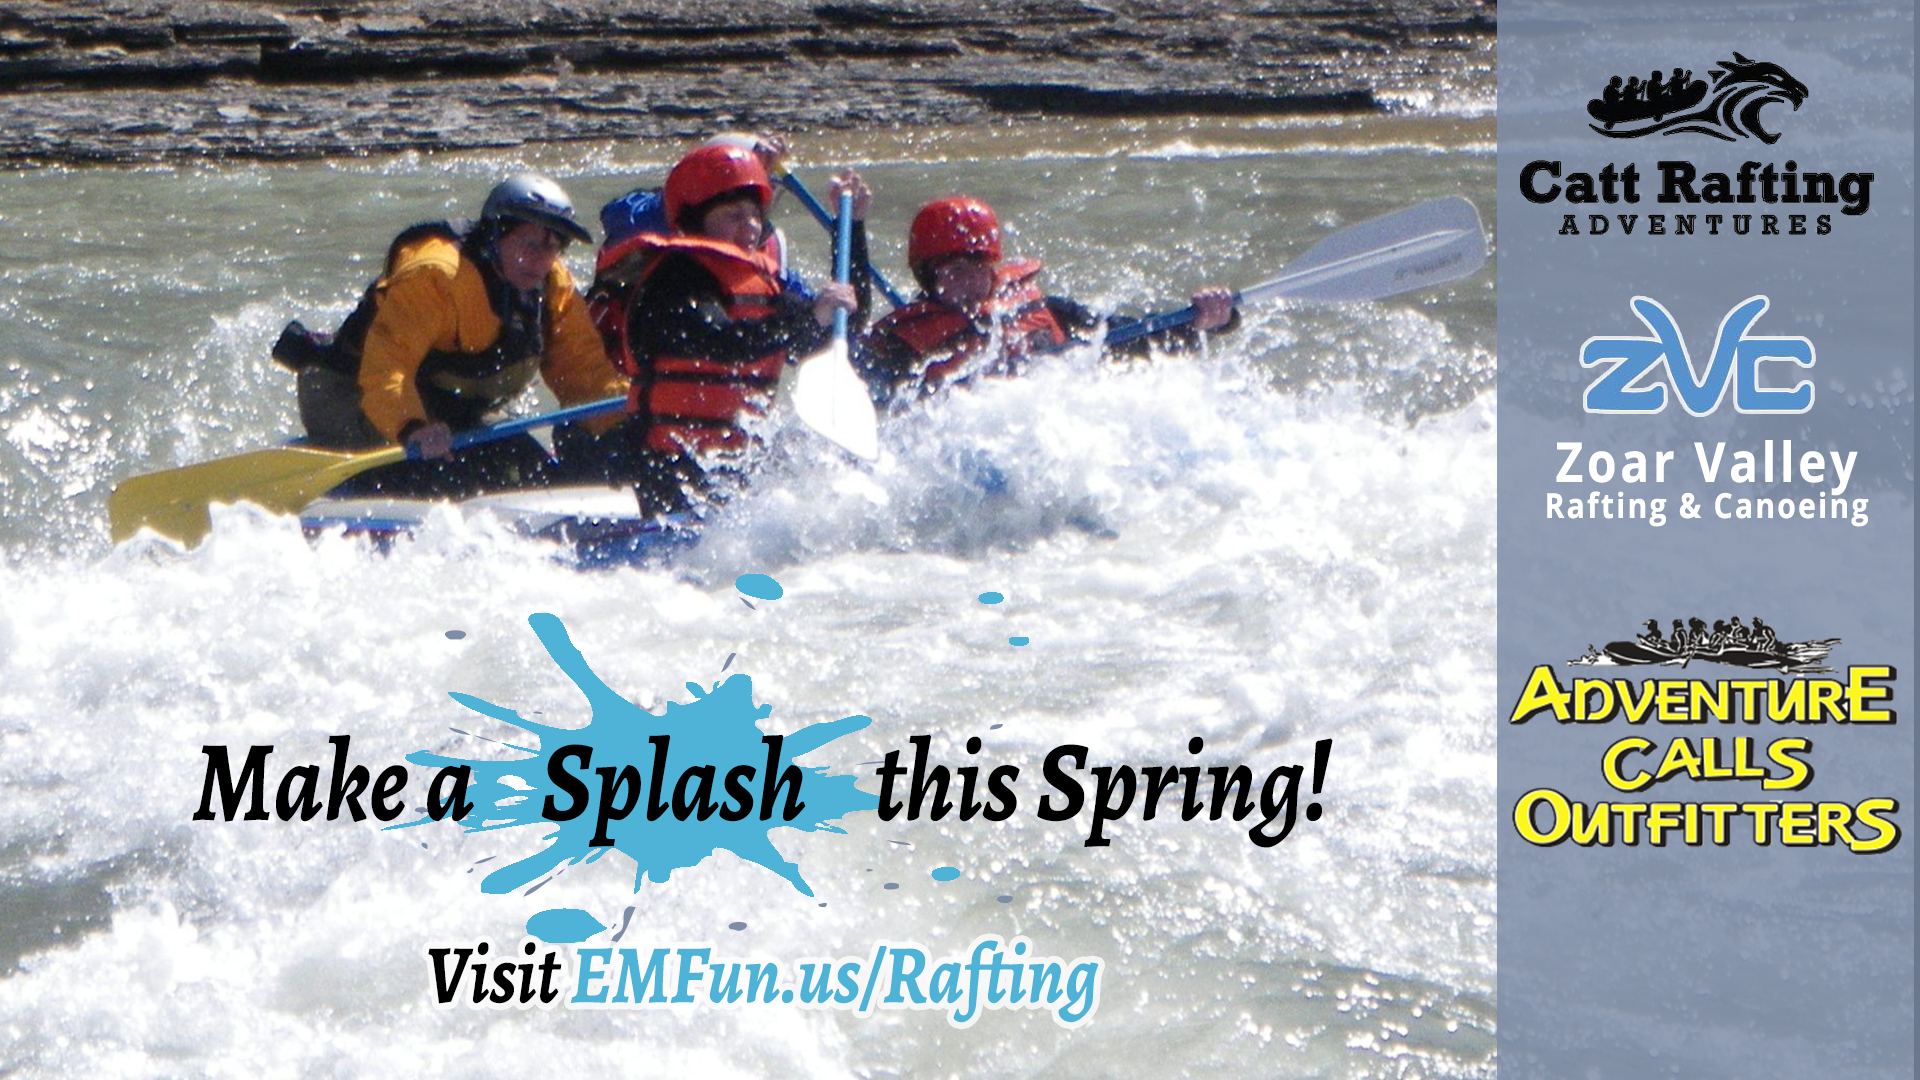 Whitewater Rafting on the Cattaraugus Creek